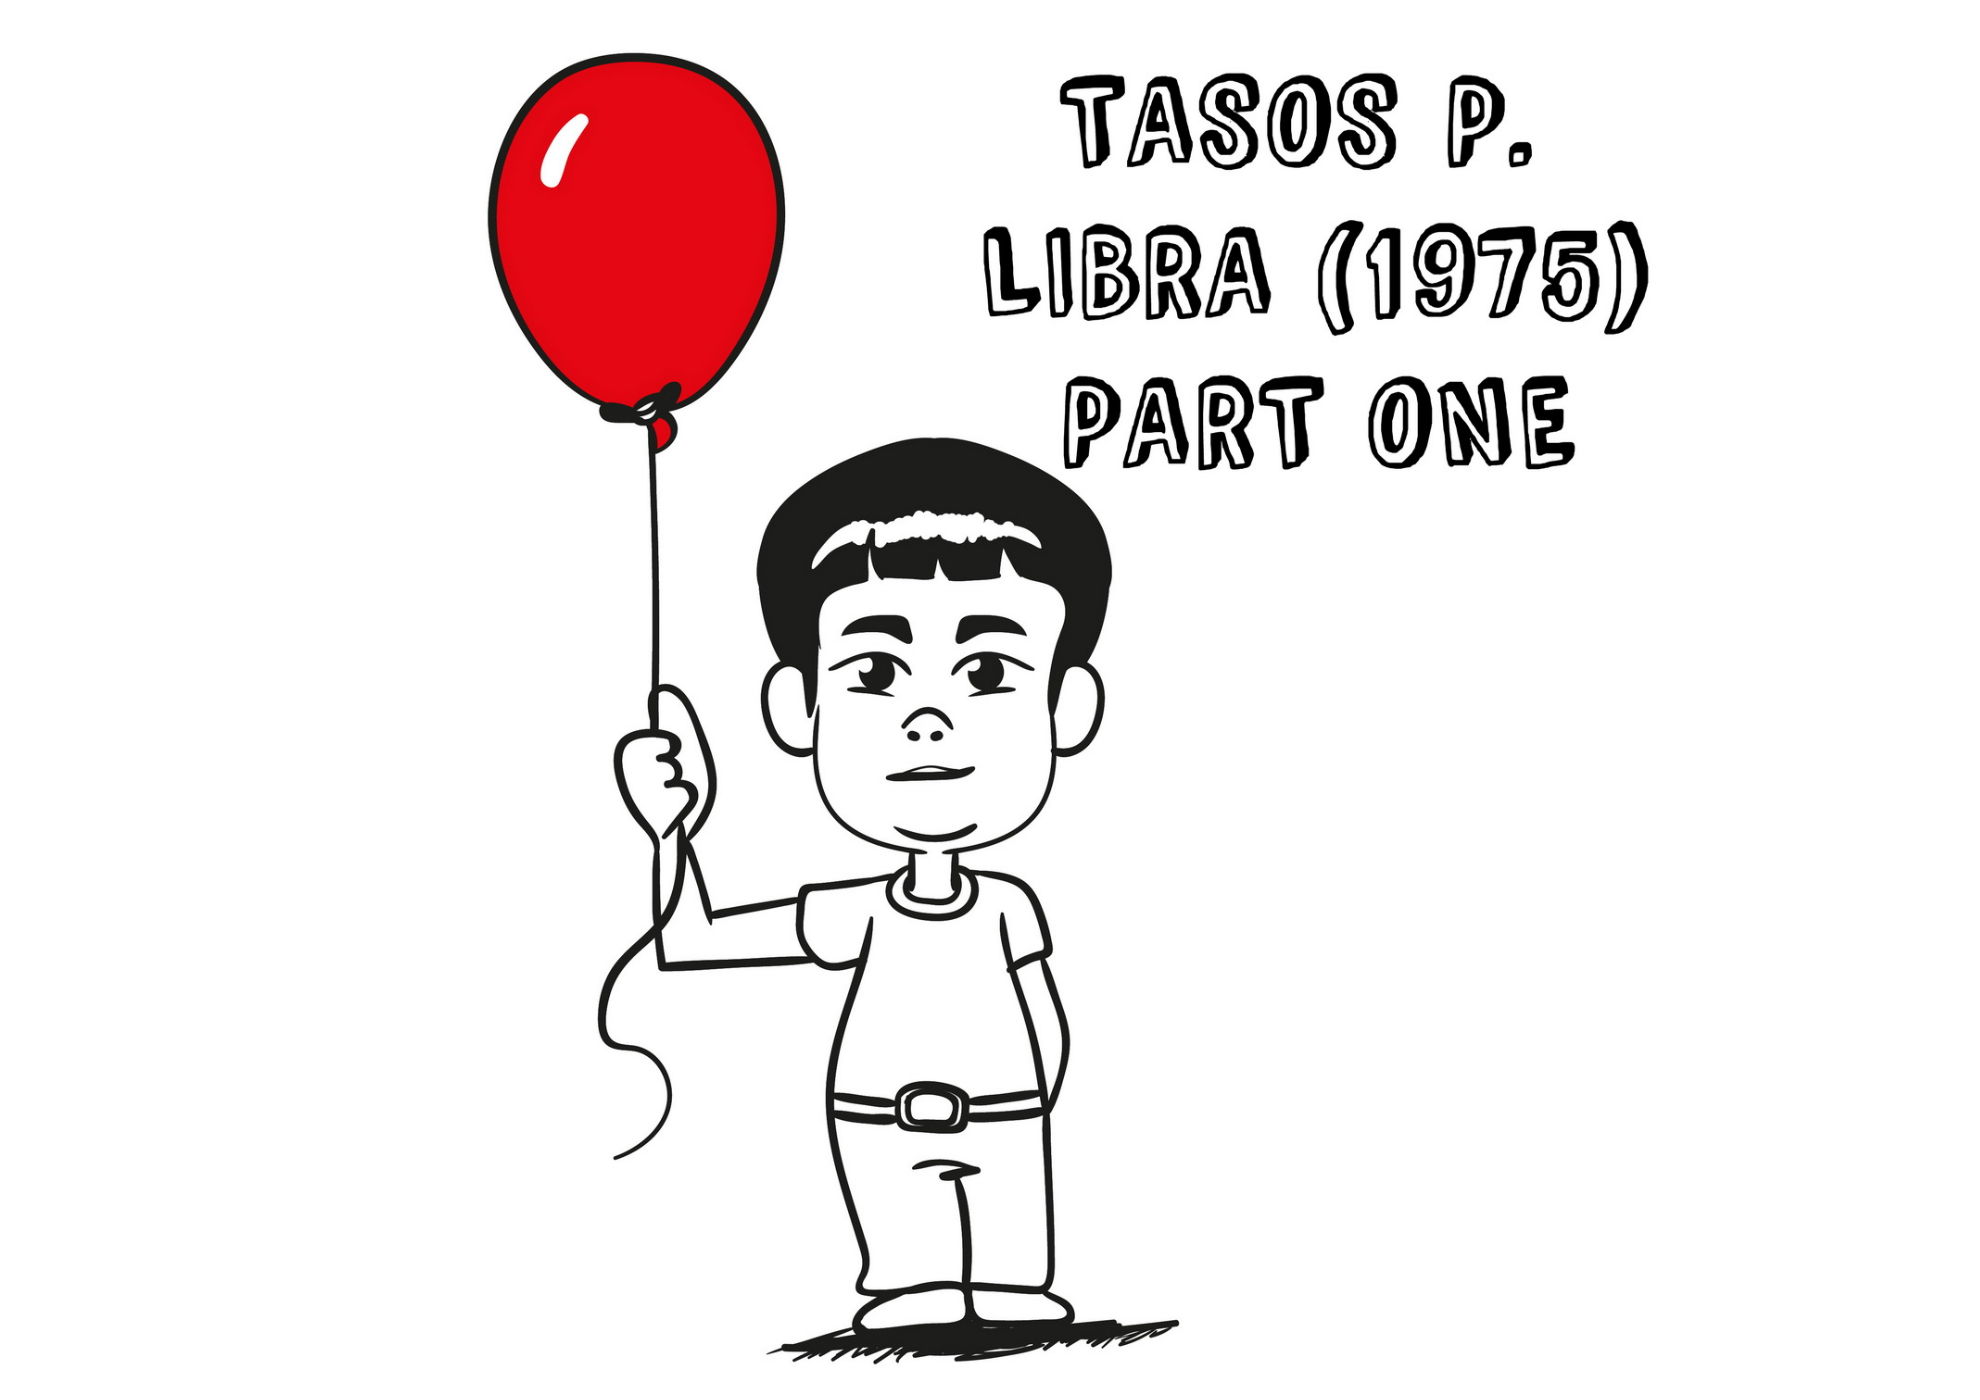 tasosp  - libra 1975-part one